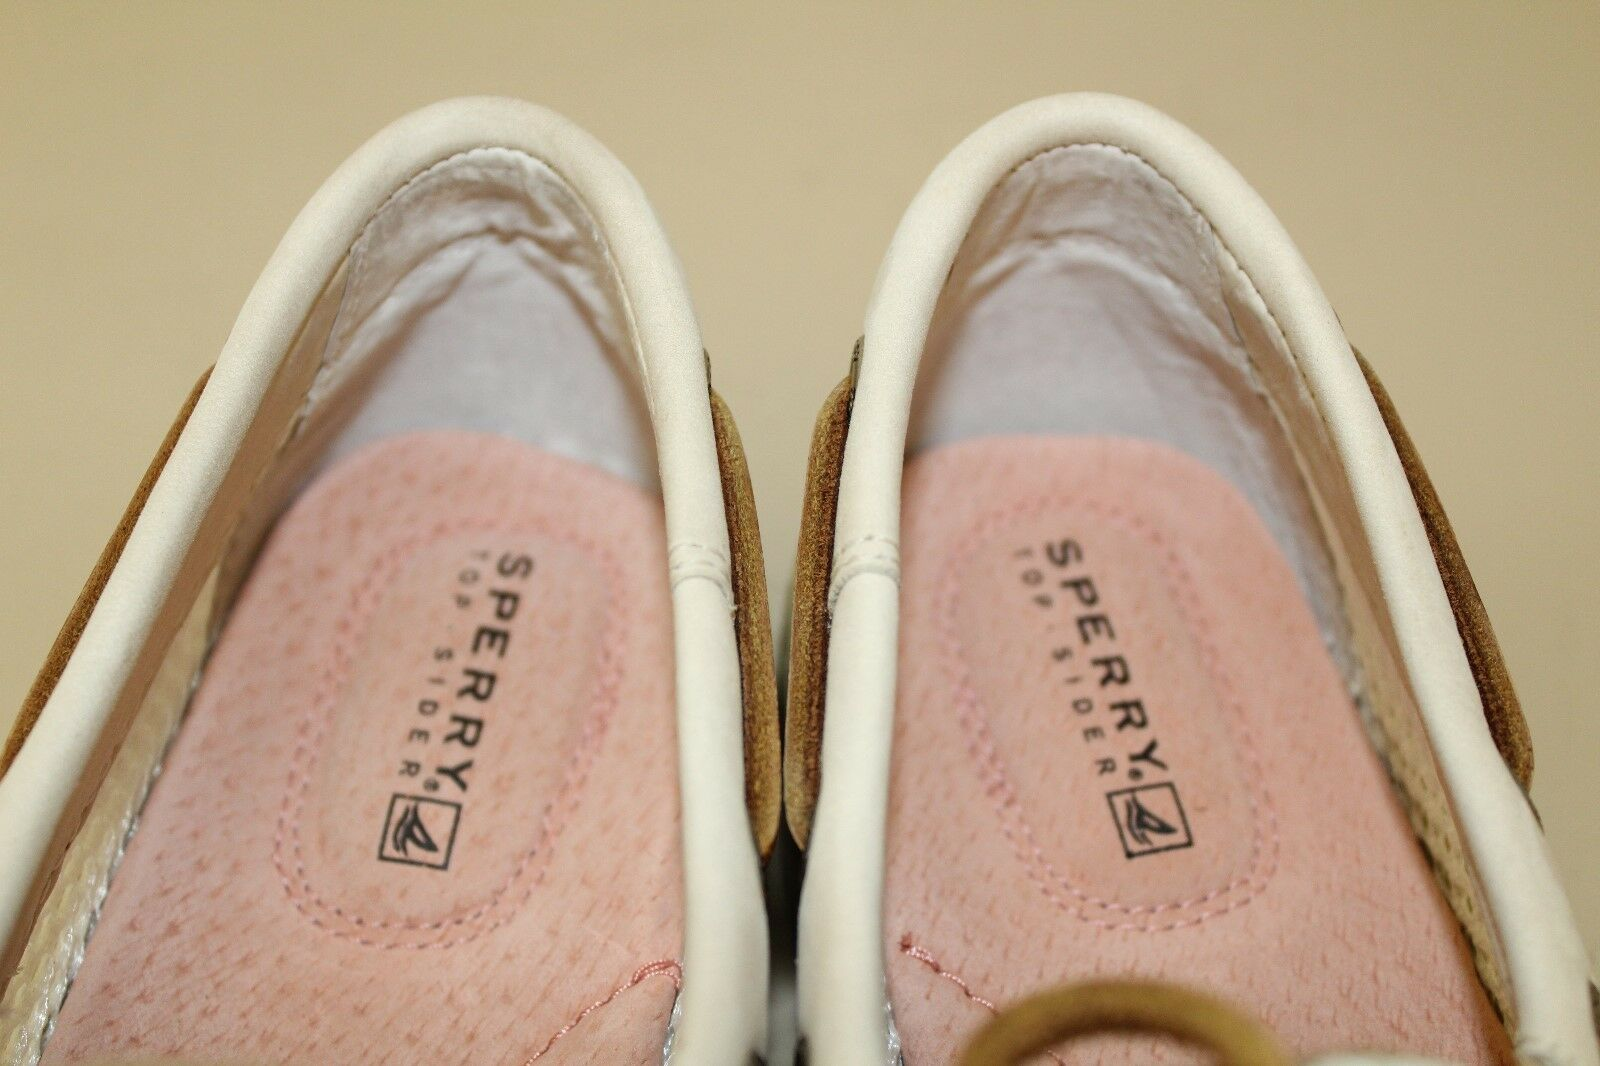 Sperry Top-Sider Donna Shoe Nubuck Sz 7.5 M Mesh Nubuck Shoe Leather Oxfords bianca / Off Wt a8b4b7